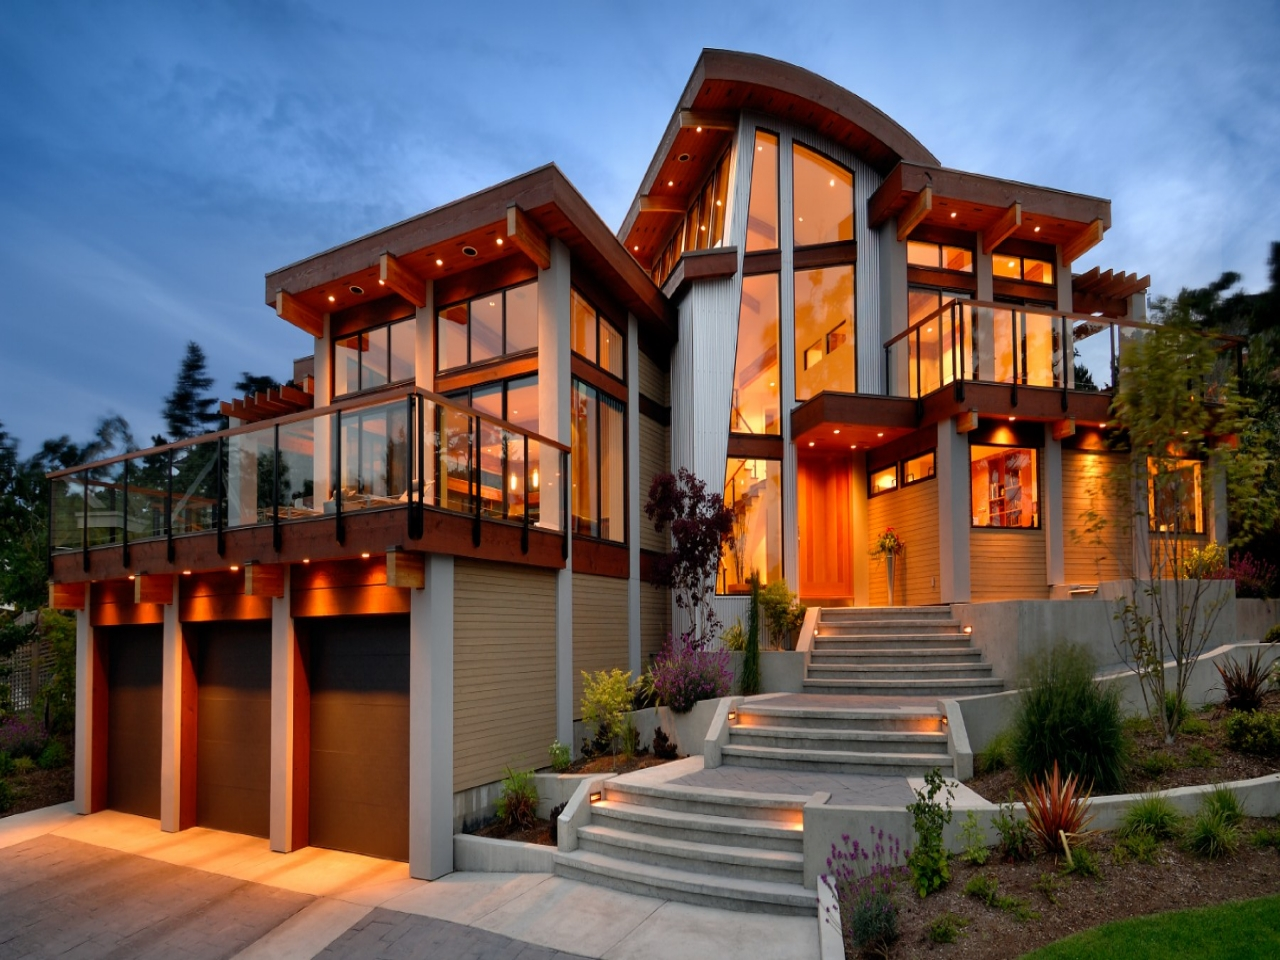 Prettiest House In The World World Beautiful House West